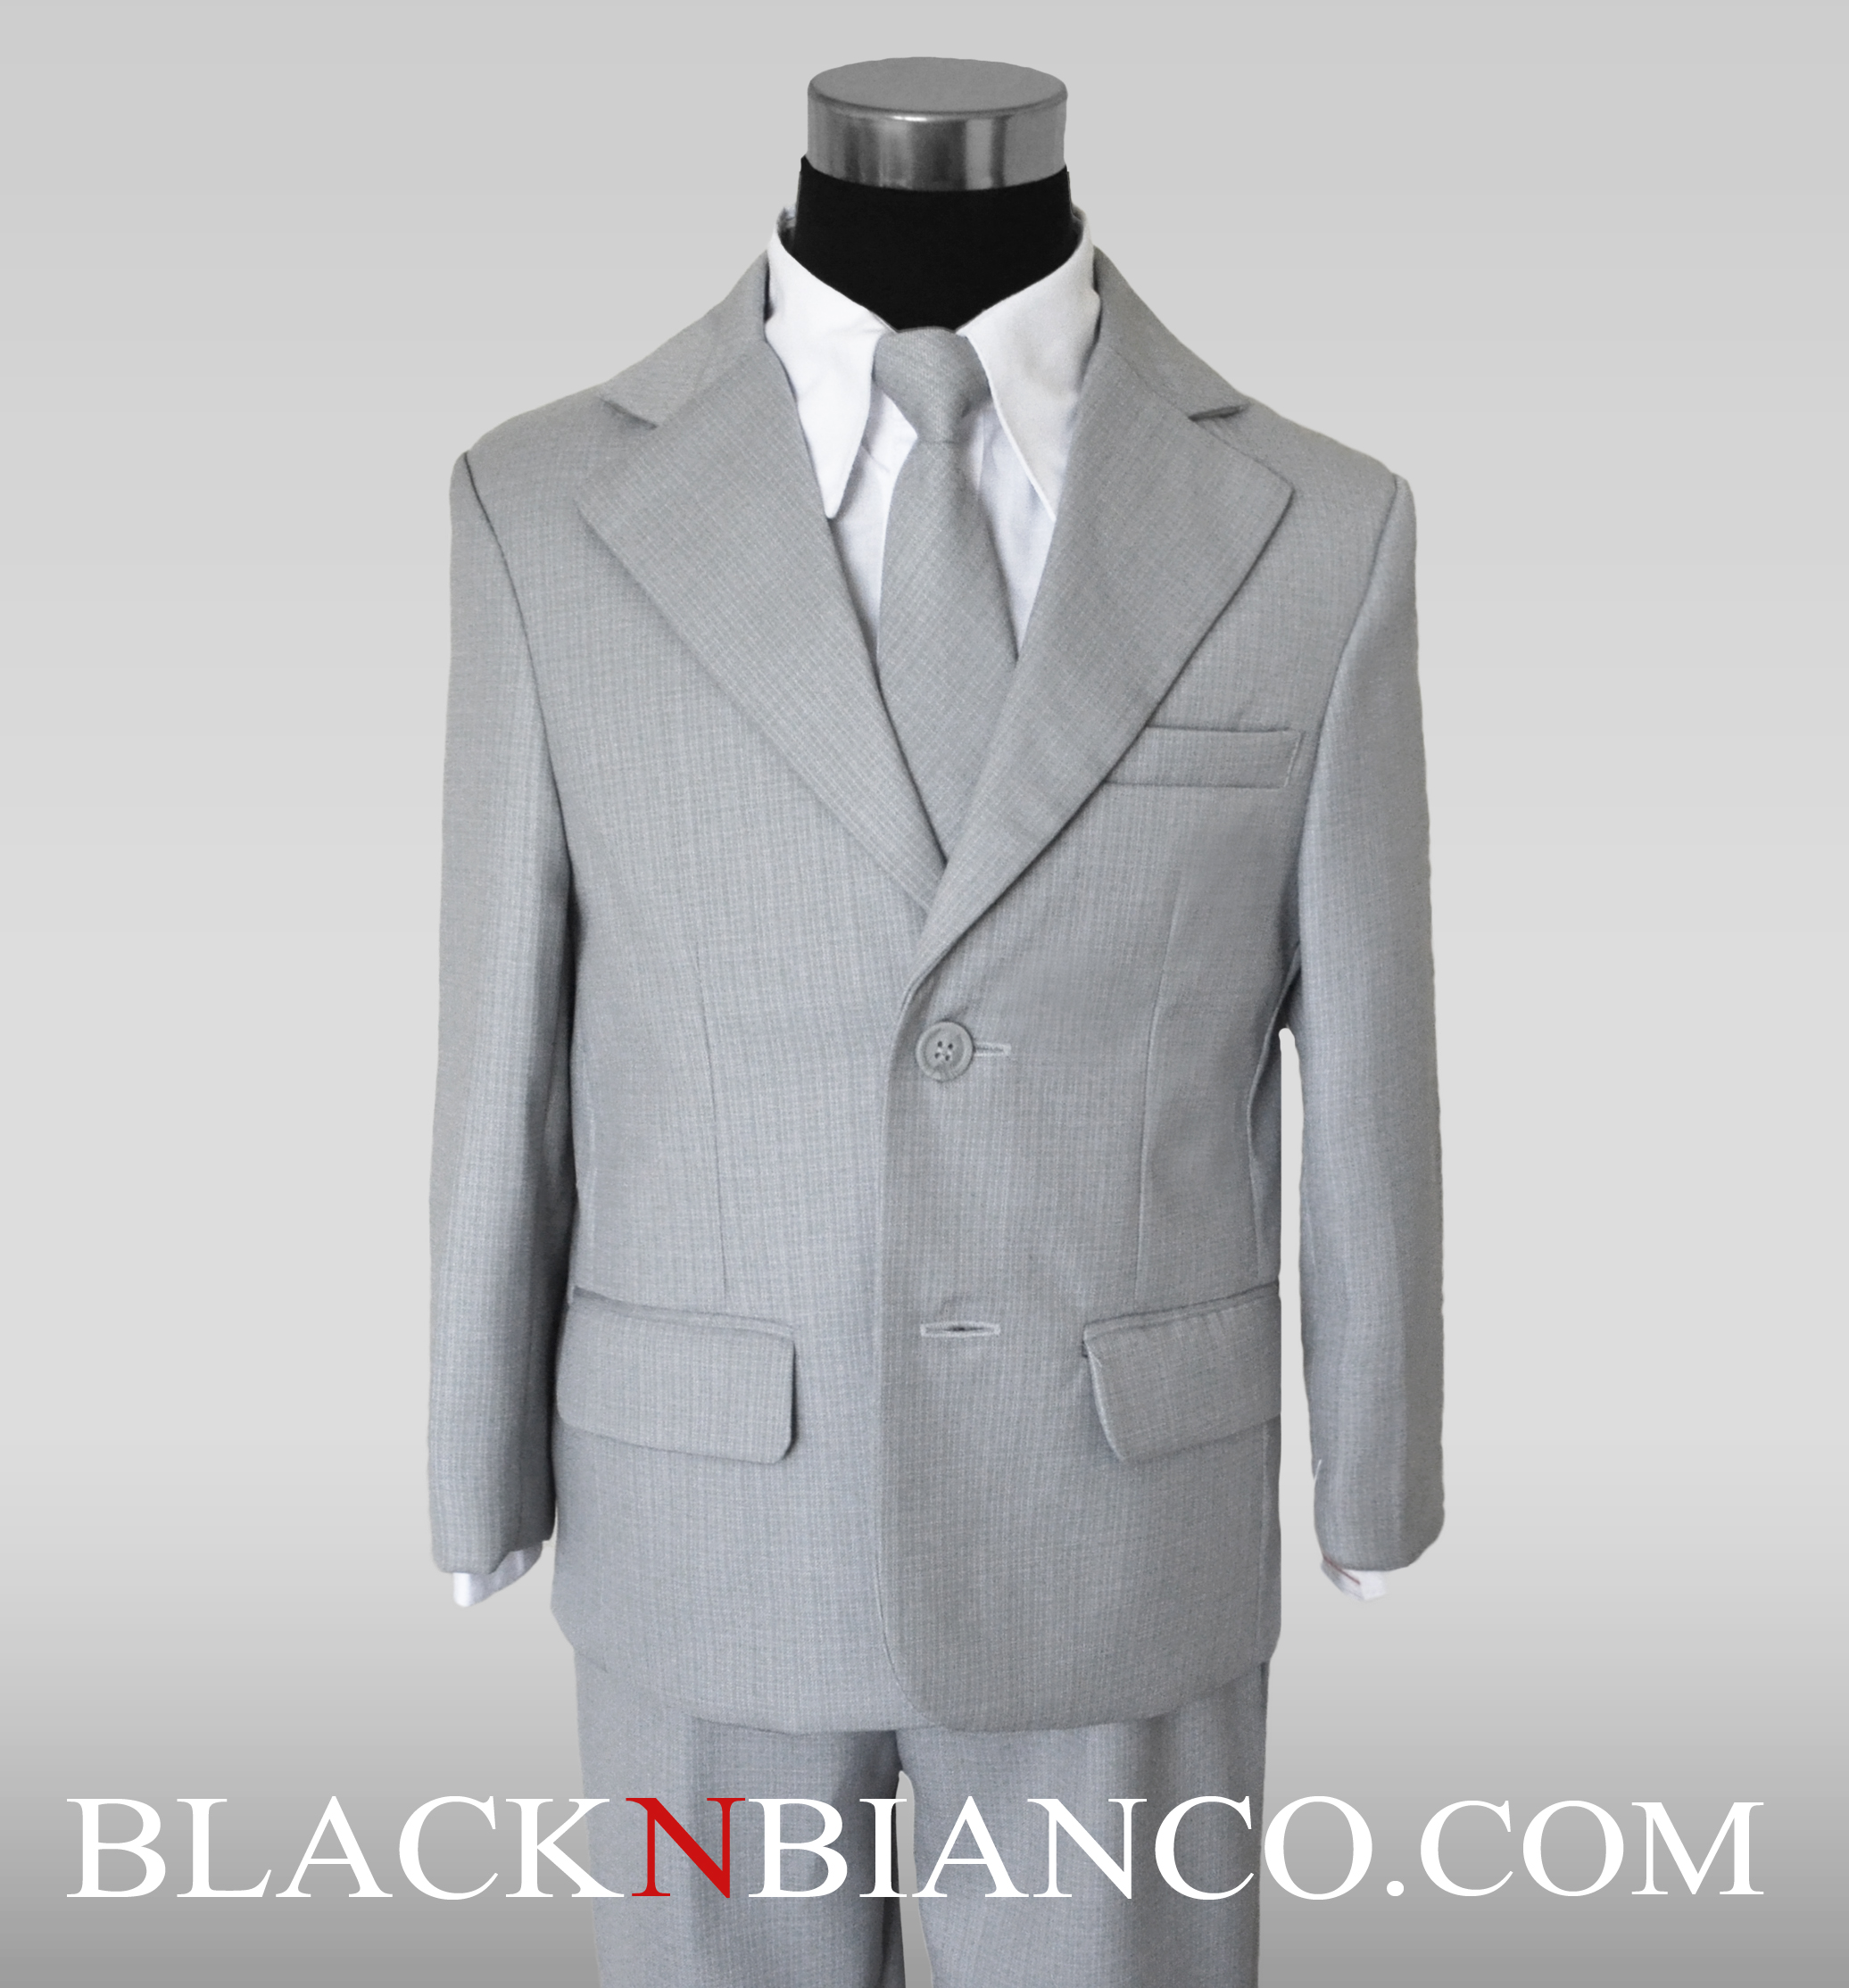 We have finest selection of Boy's Suits needed for a Wedding, First Communion, Holiday Party or other formal event. Boys Suits at shopnow-bqimqrqk.tk are perfect for your Baby Boy, Toddler or Little Boy. $ 25th Anniversary 50 SKU#JA Boys Notch Lapel 3 Pc Light Blue And Gray Linen Tonal Suit .